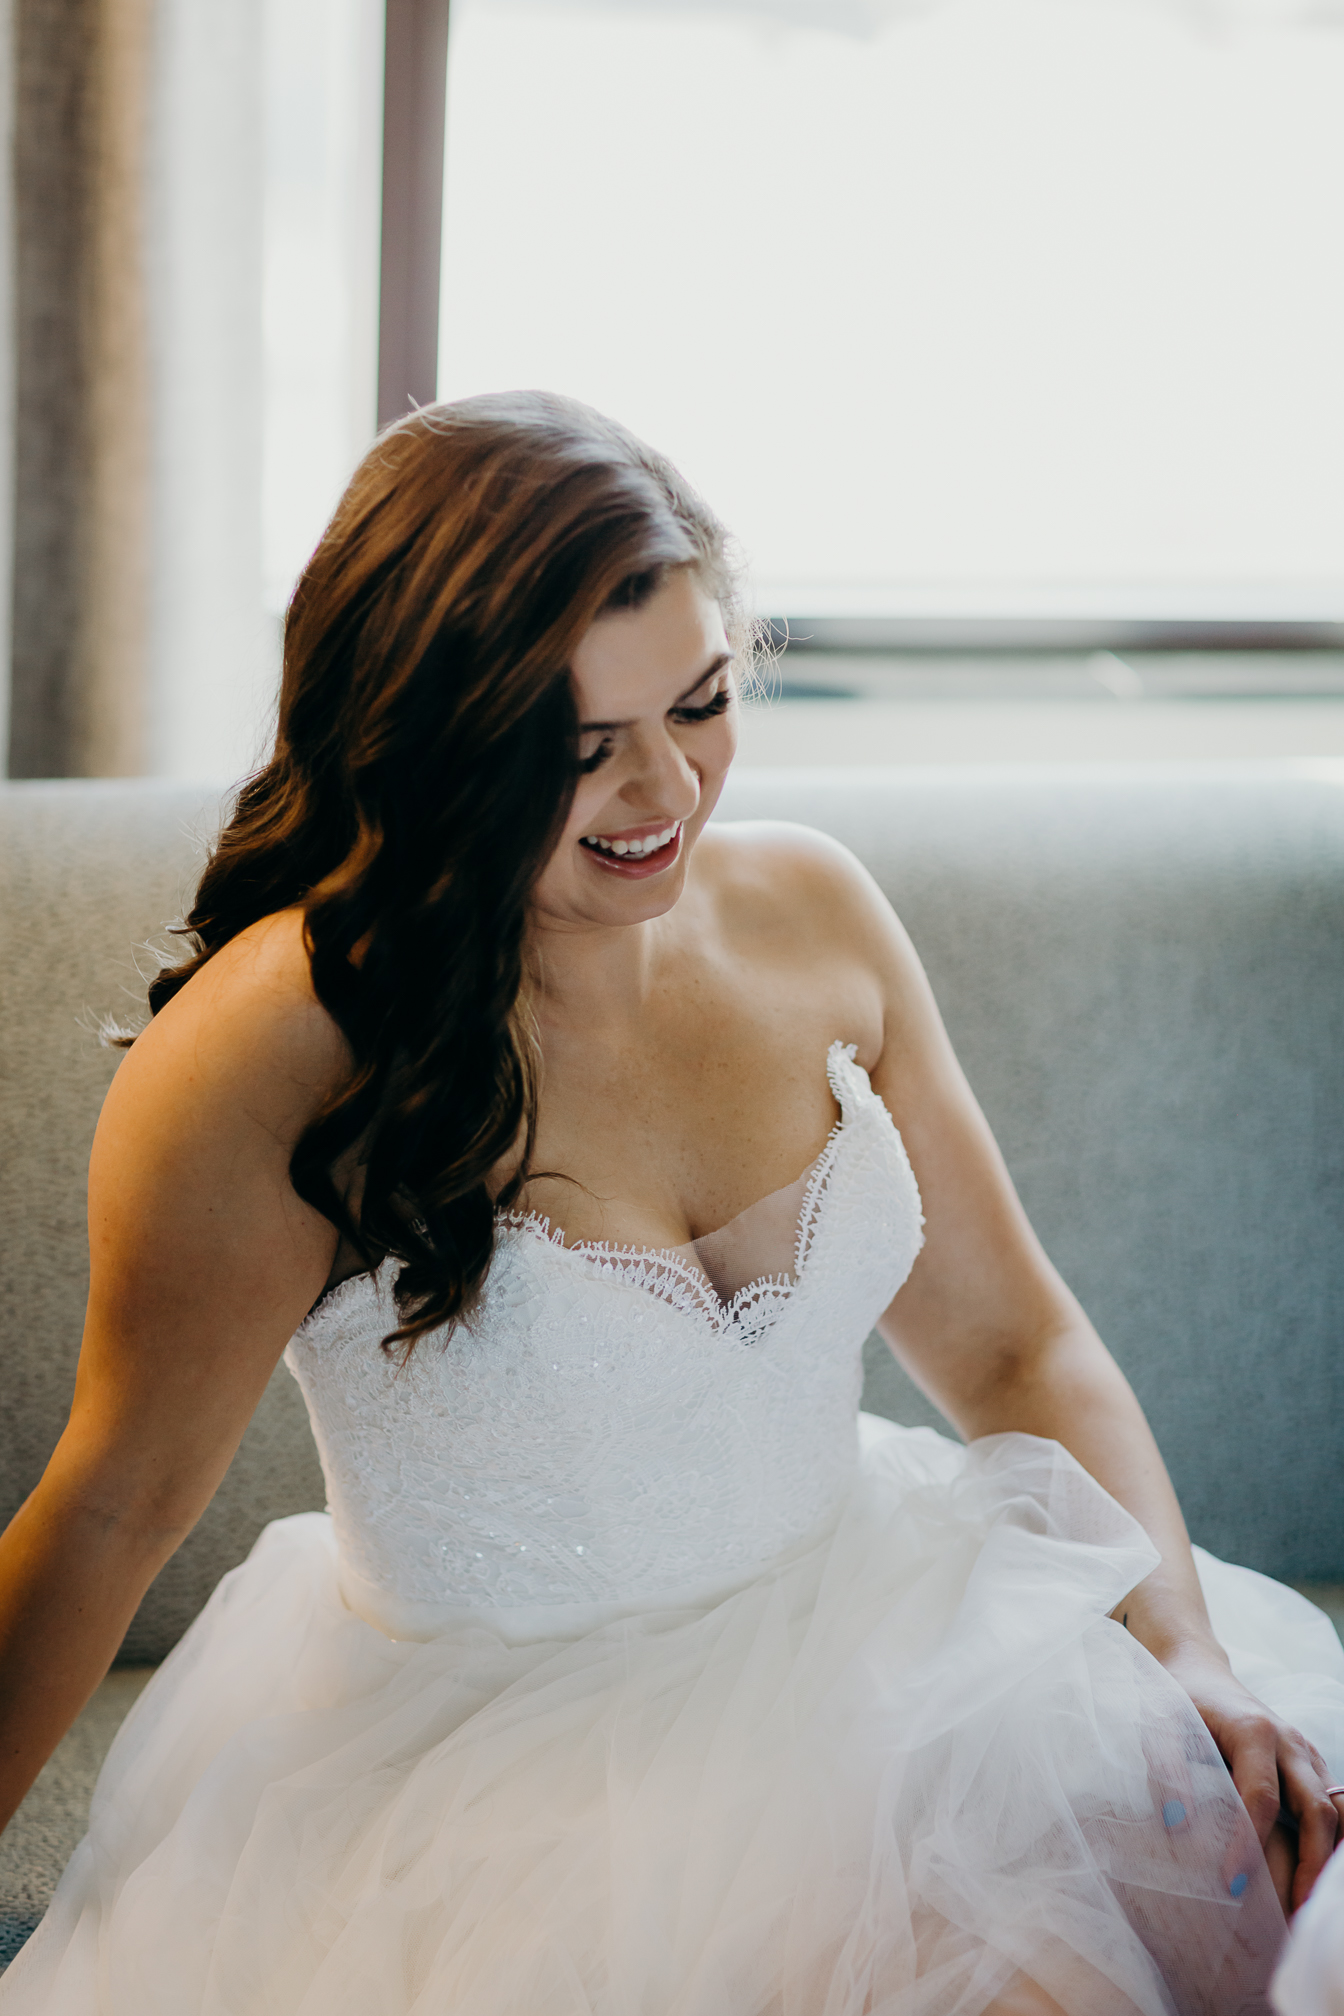 Gianna Keiko Atlanta NYC California Wedding Elopement Photographer_Sneak Peek-8.jpg